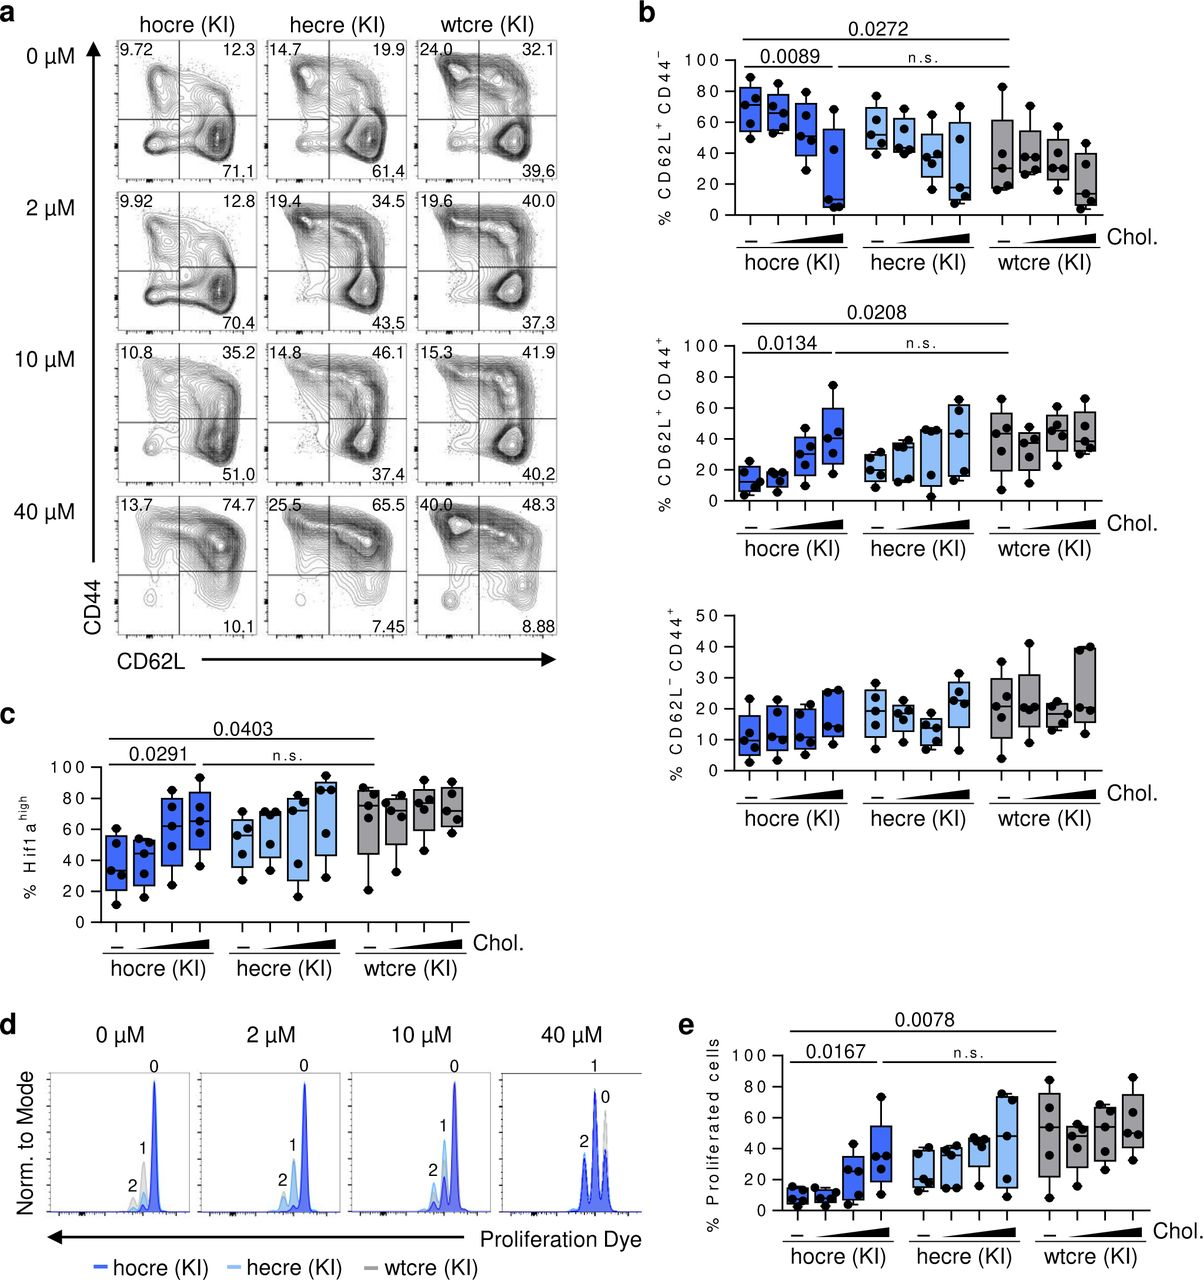 TCAIM-dependent expression of metabolism controlling genes in activated CD8 + T cells. ( a ) Myc and Hif1α <t>mRNA</t> expression of naïve and polyclonally activated CD8 + T cells with TCAIM KI, KO or wt gene expression (KI and wt: n = 3; KO: n = 2). <t>RNA-seq</t> raw count data of protein-coding genes were normalized and log 2 -transformed after adding a pseudocount to each value. Cells had been stimulated with 5 µg/ ml plate-bound αCD3 and 2 µg/ ml soluble αCD28 at a density of 6 x 10 5 cells/ 200 µl culture medium. Quantitative data represents means ± SEM. ( b ) Overview of the differentially expressed enzymes controlling the glycolysis, TCA cycle and glutaminolysis pathway between 24 to 48 h polyclonally activated TCAIM KI and wt CD8 + T cells (log 2 fold change). P-values have been adjusted to either 0.05 or 0.3 as indicated (n = 3). White areas indicate p-values exceeding the adjusted ones. Cells had been stimulated with 5 µg/ ml plate-bound αCD3 and 2 µg/ ml soluble αCD28 at a density of 6 x 10 5 cells/ 200 µl culture medium (a-b).